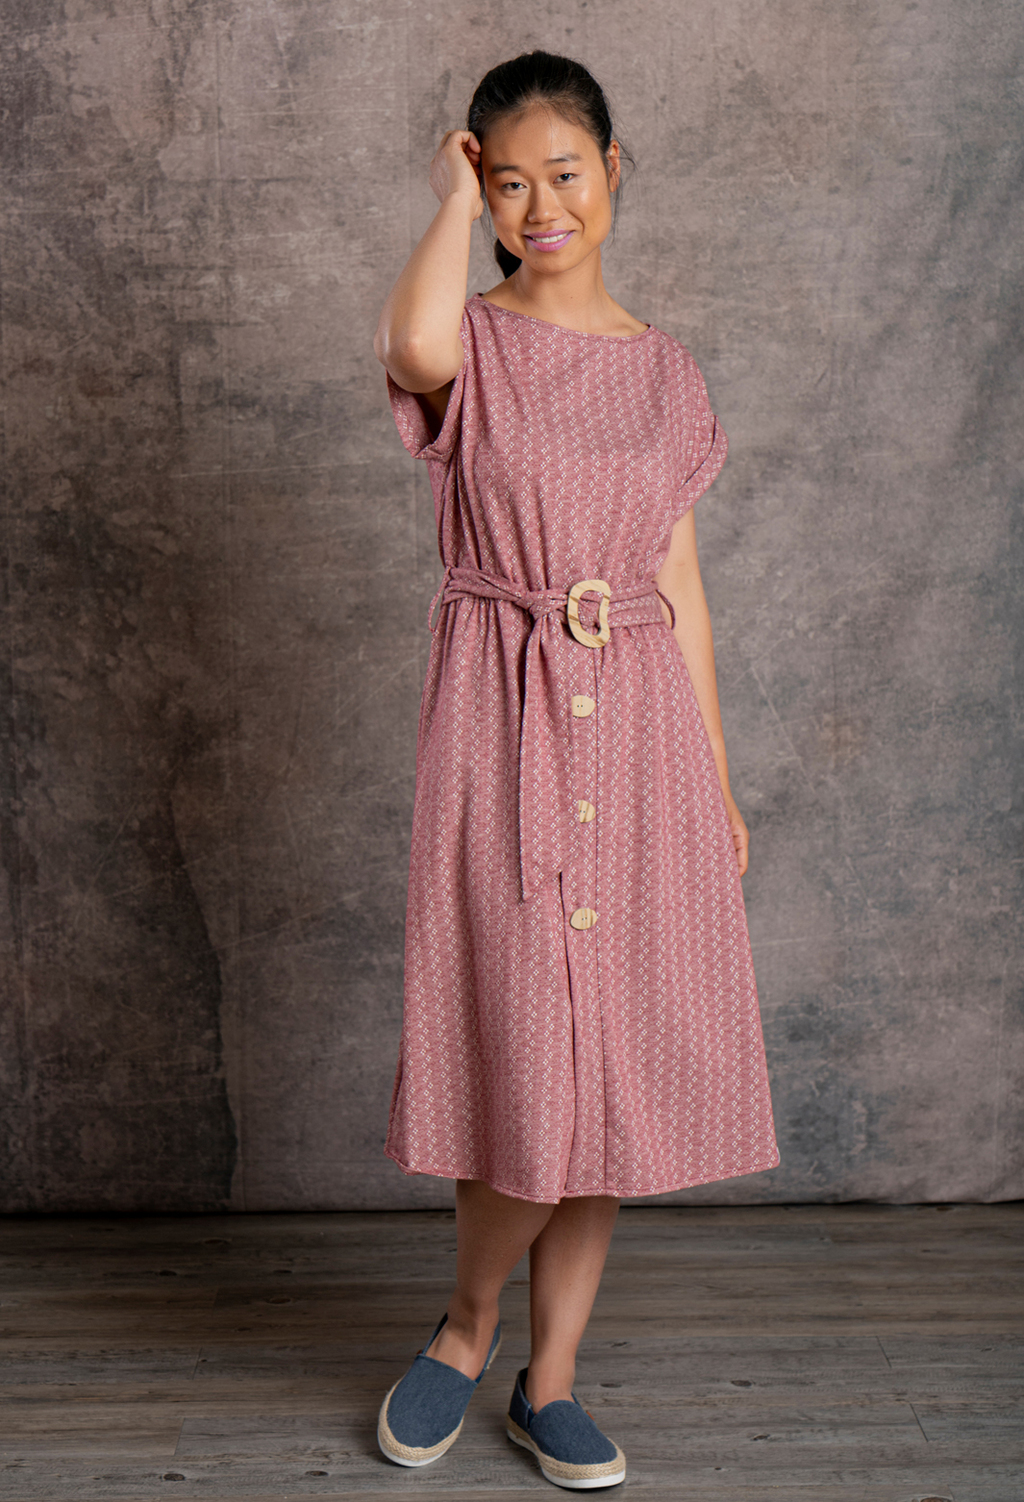 WOMEN'S MIDI DRESS W/BELT ORGANIC FABRIC AND KAPOK FIBER